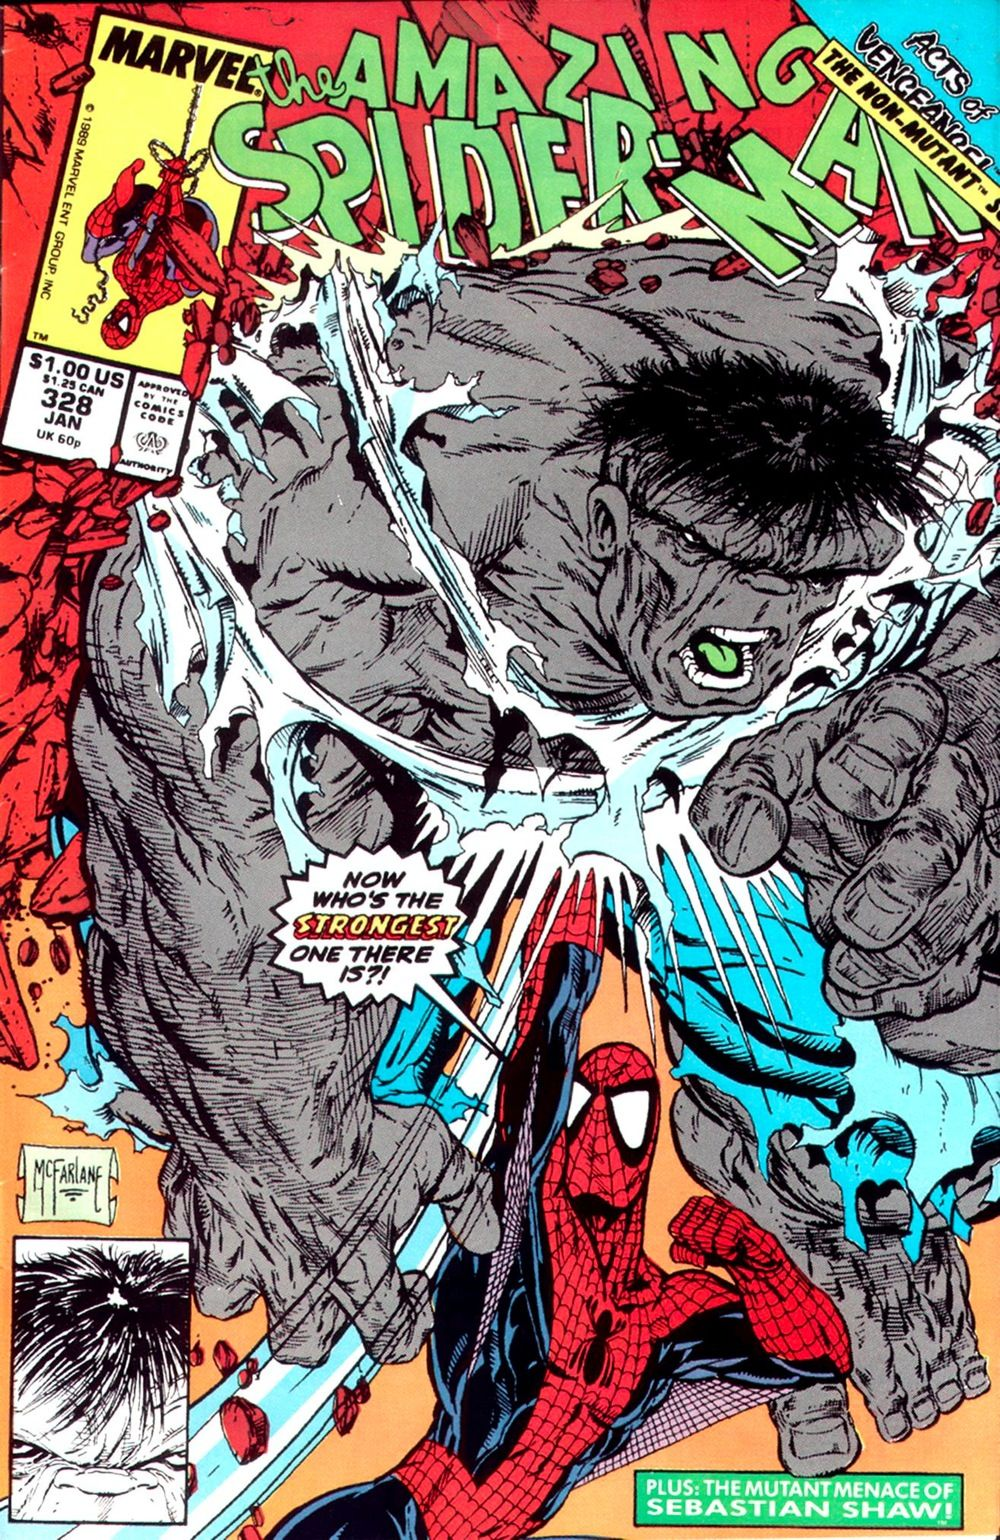 Comic Book Cover Art Sale : Quot move aside batman spidey has swung in to break the